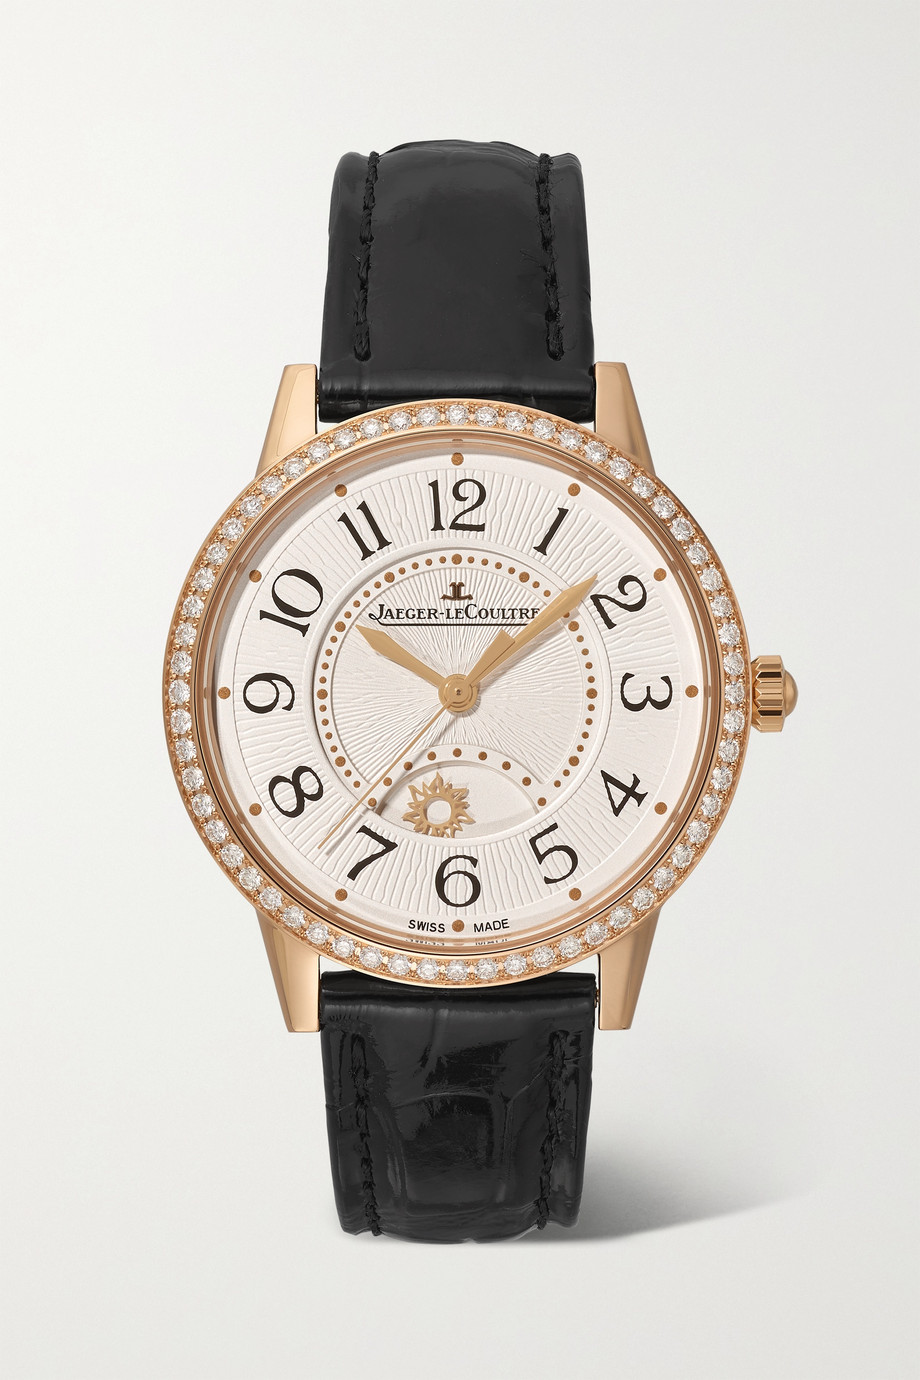 Jaeger-LeCoultre Rendez-Vous Night & Day Automatic 34mm medium rose gold, alligator and diamond watch